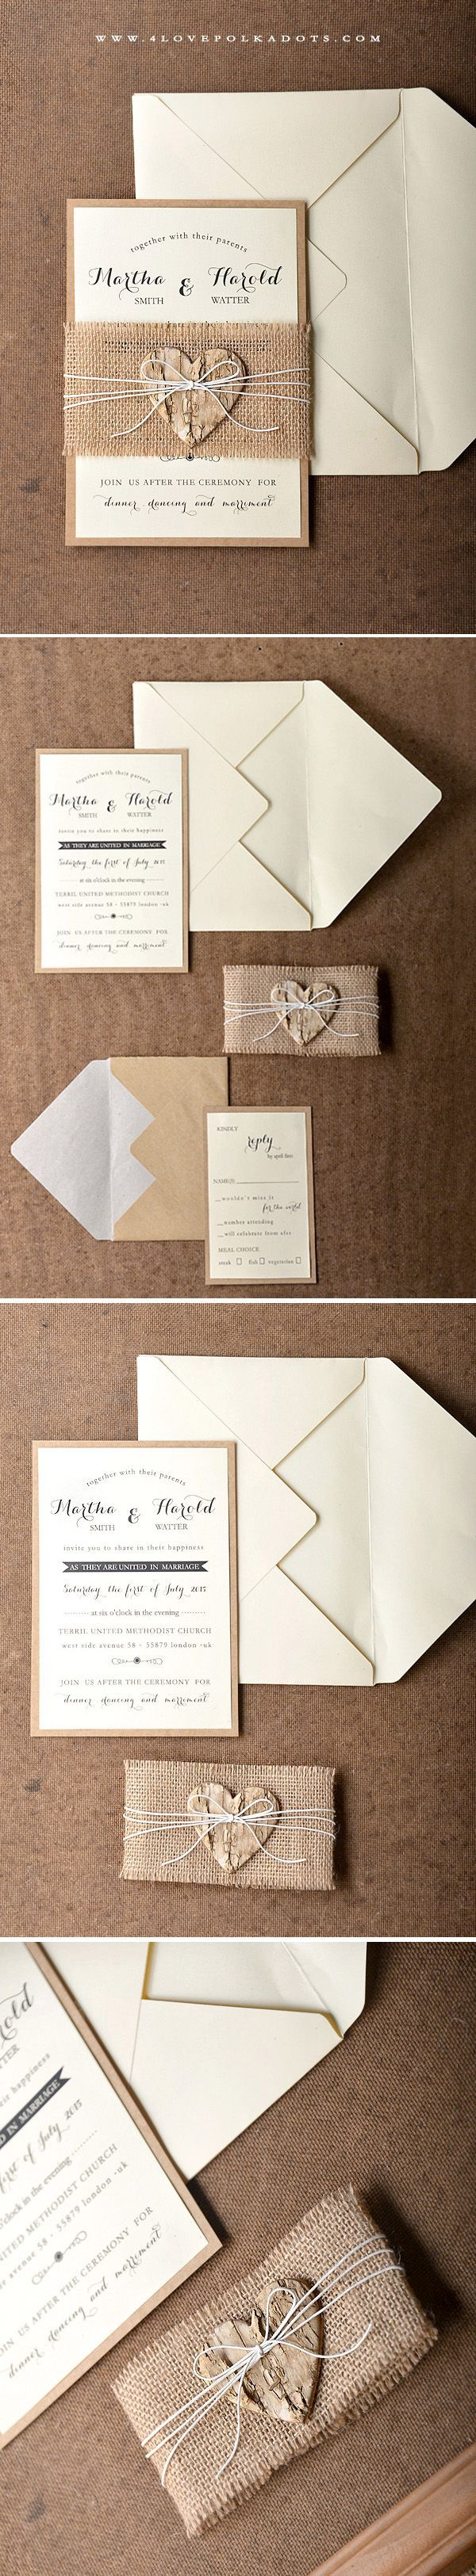 Wallpaper hd unique diy wedding invitations of gifts desktop best cards invites